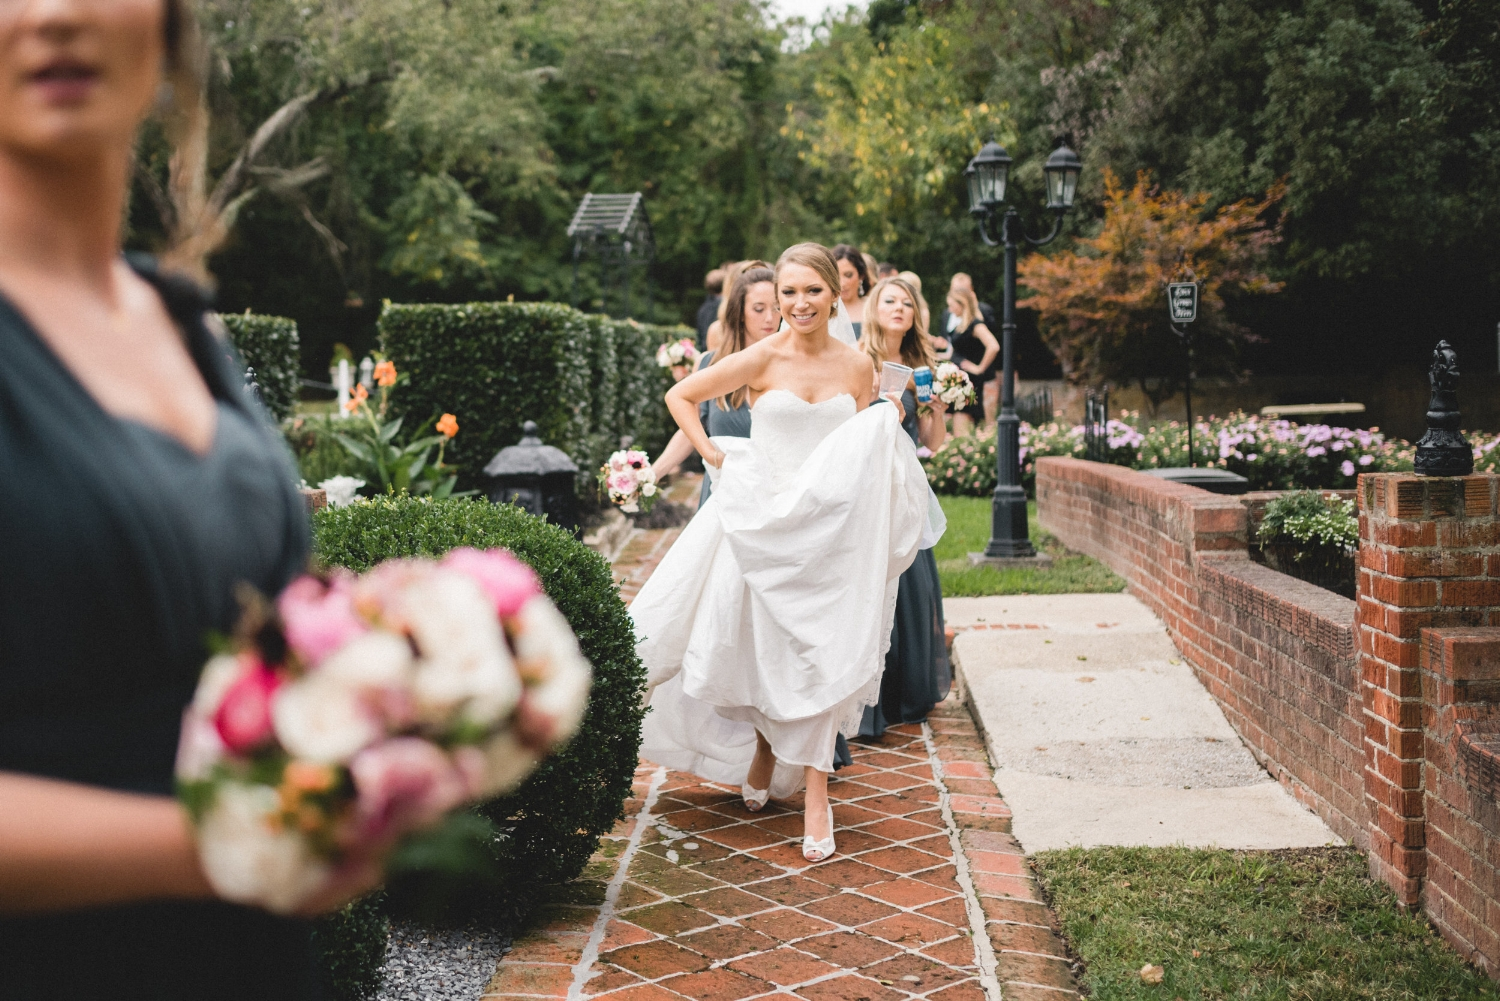 Brielle seemed so happy and ready to celebrate. I think this is the point in the day, for all brides, where time seems to pick up speed. All wish for time to slow down so the moments will be savored for eternity.